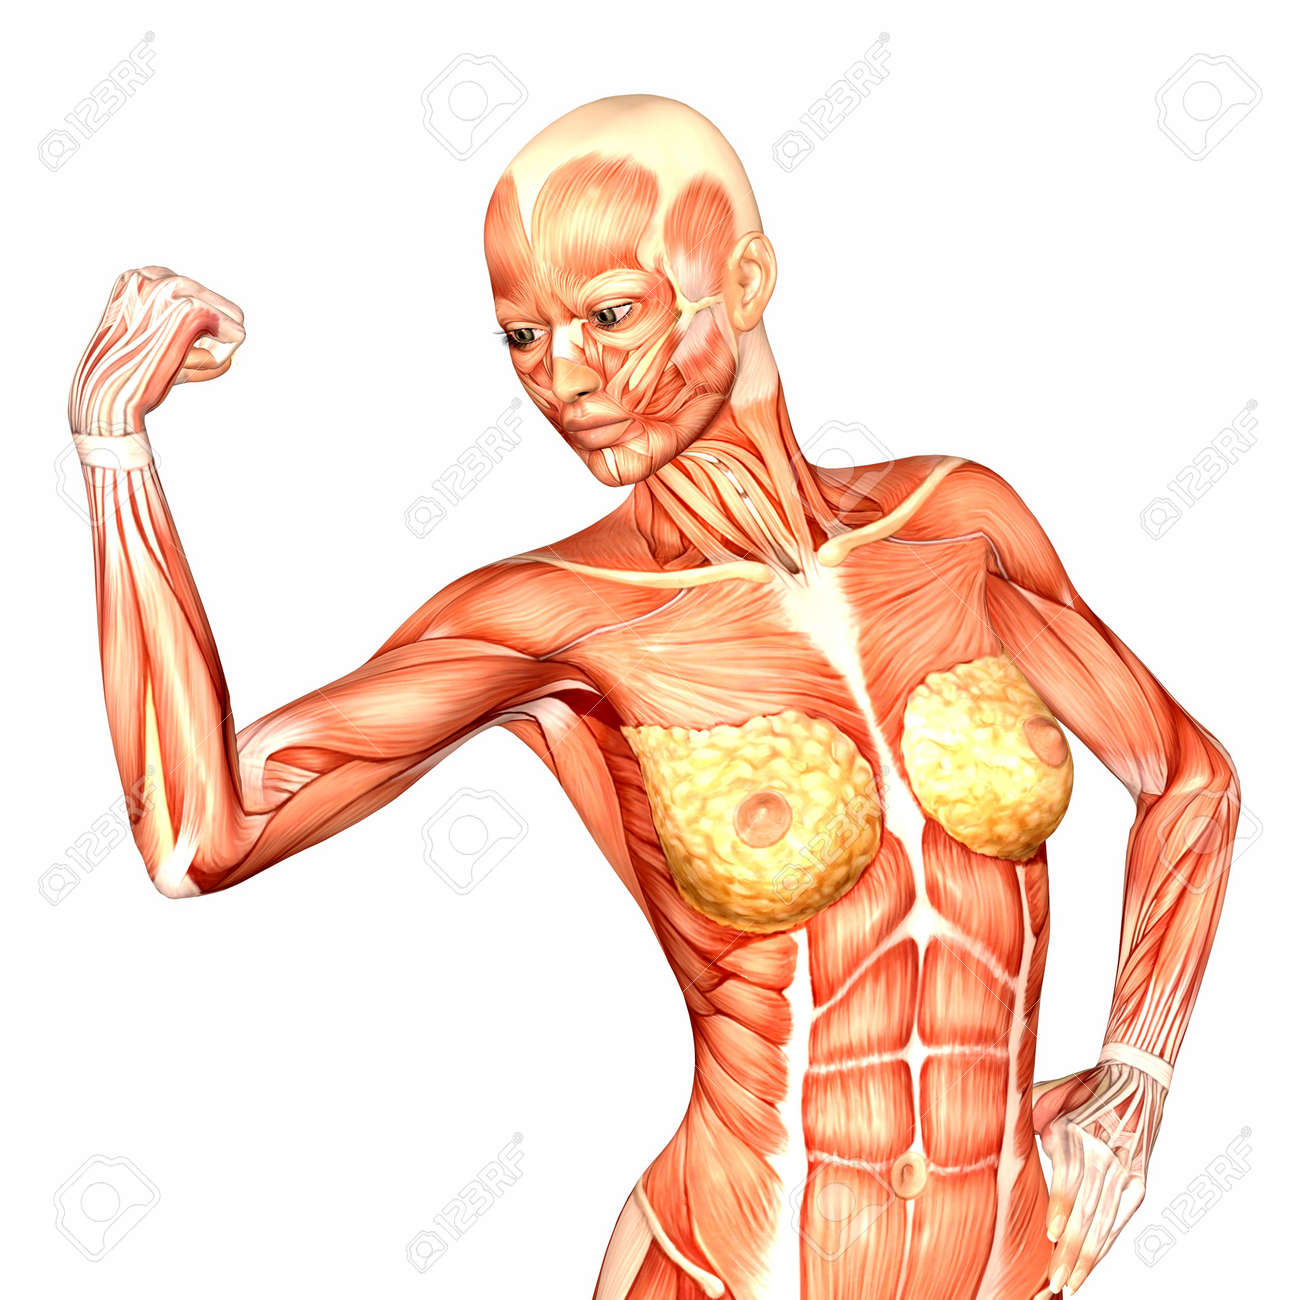 Illustration Of The Anatomy Of The Female Human Upper Body Isolated ...